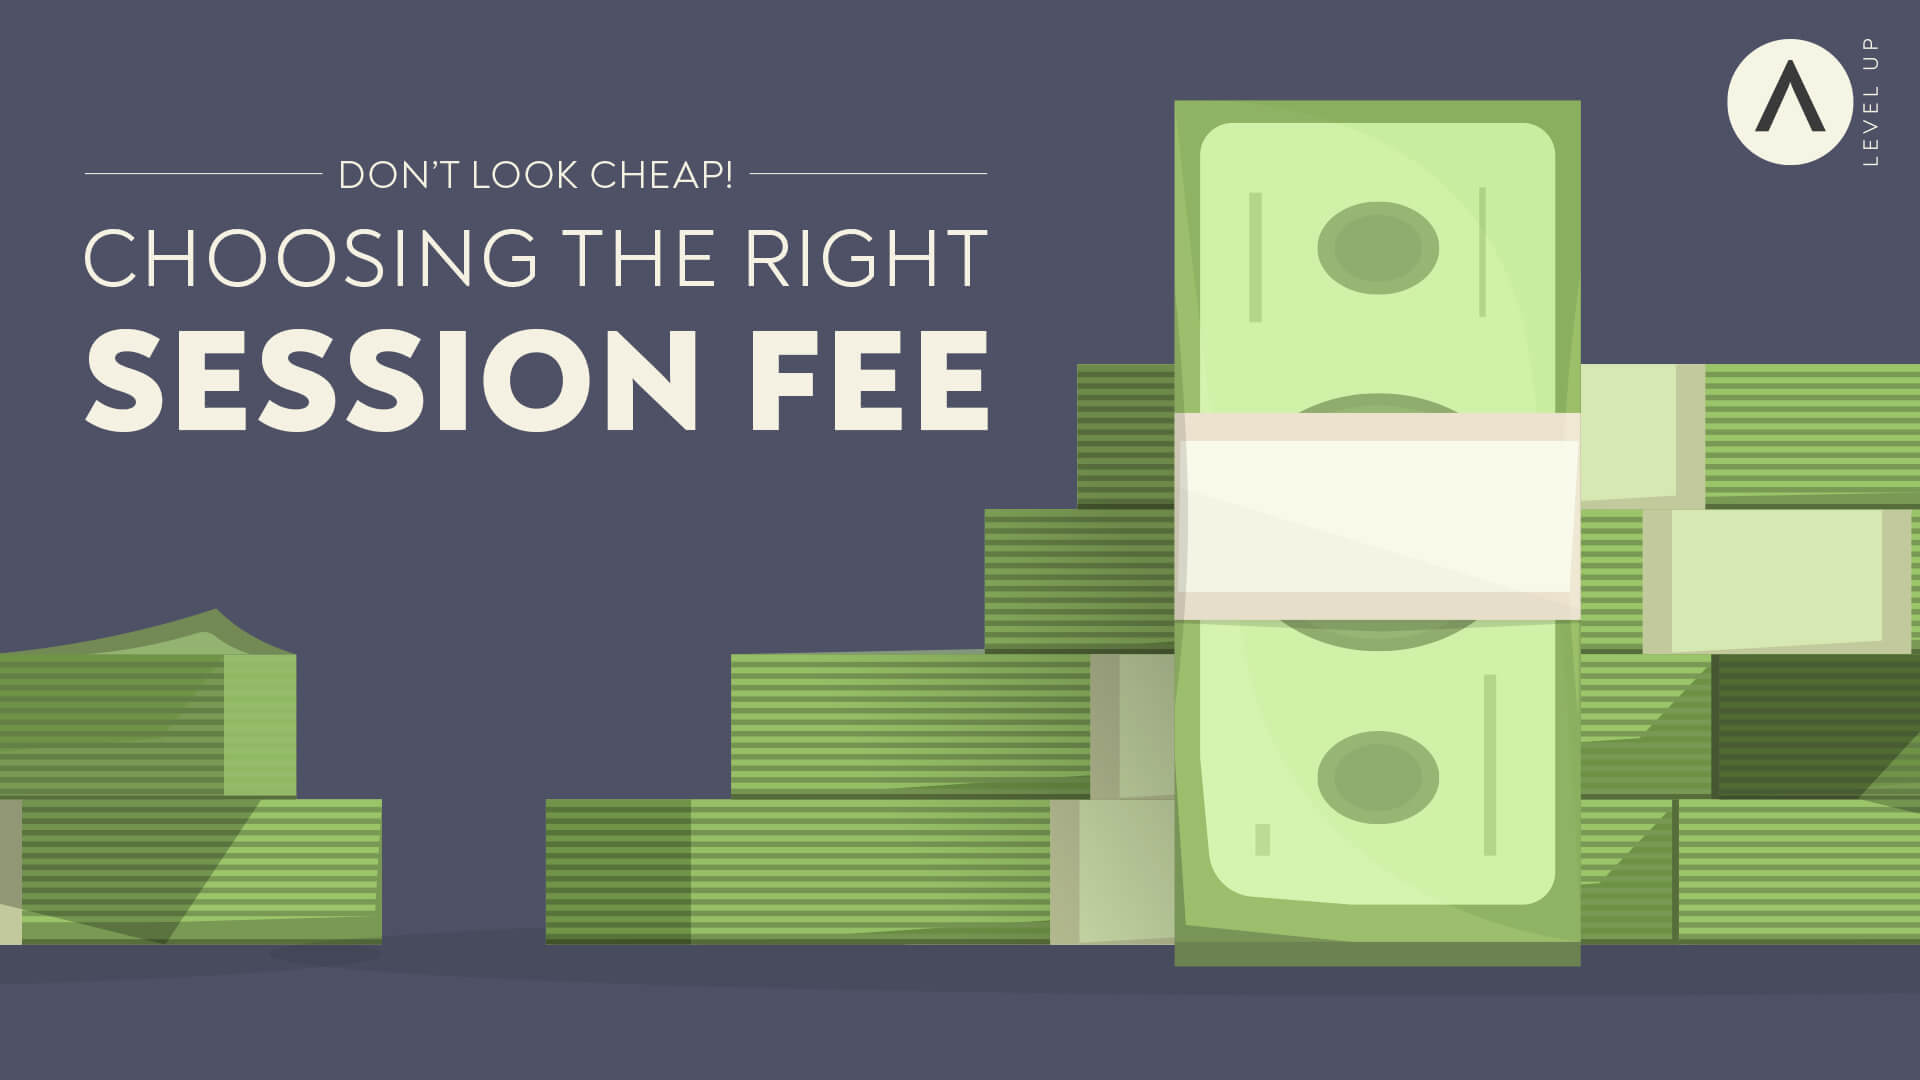 Don't Look Cheap! Choosing the Right Session Fee